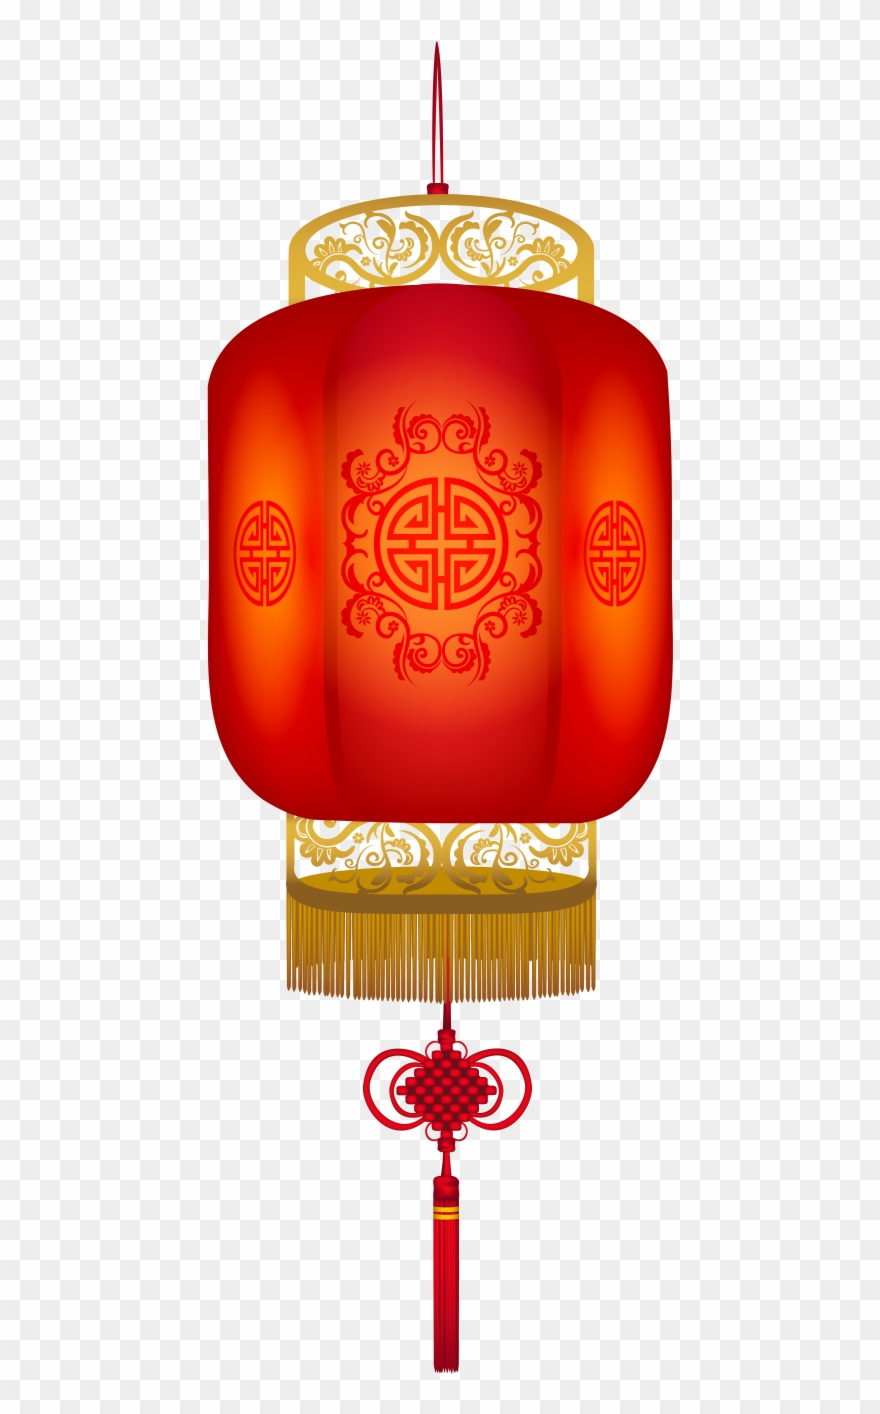 Free Png Download Hanging Chinese Lantern Clipart Png Transparent.